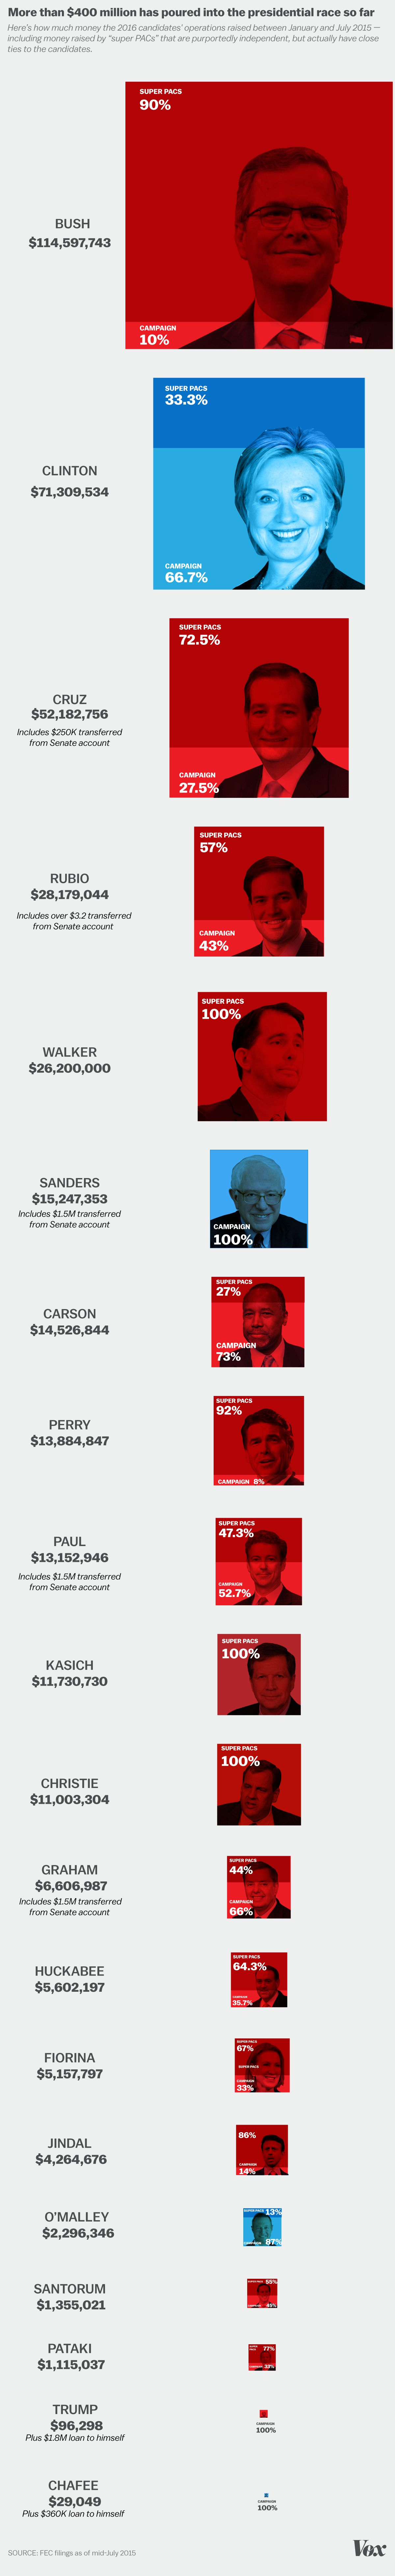 Campaign-finance-graphic-july15